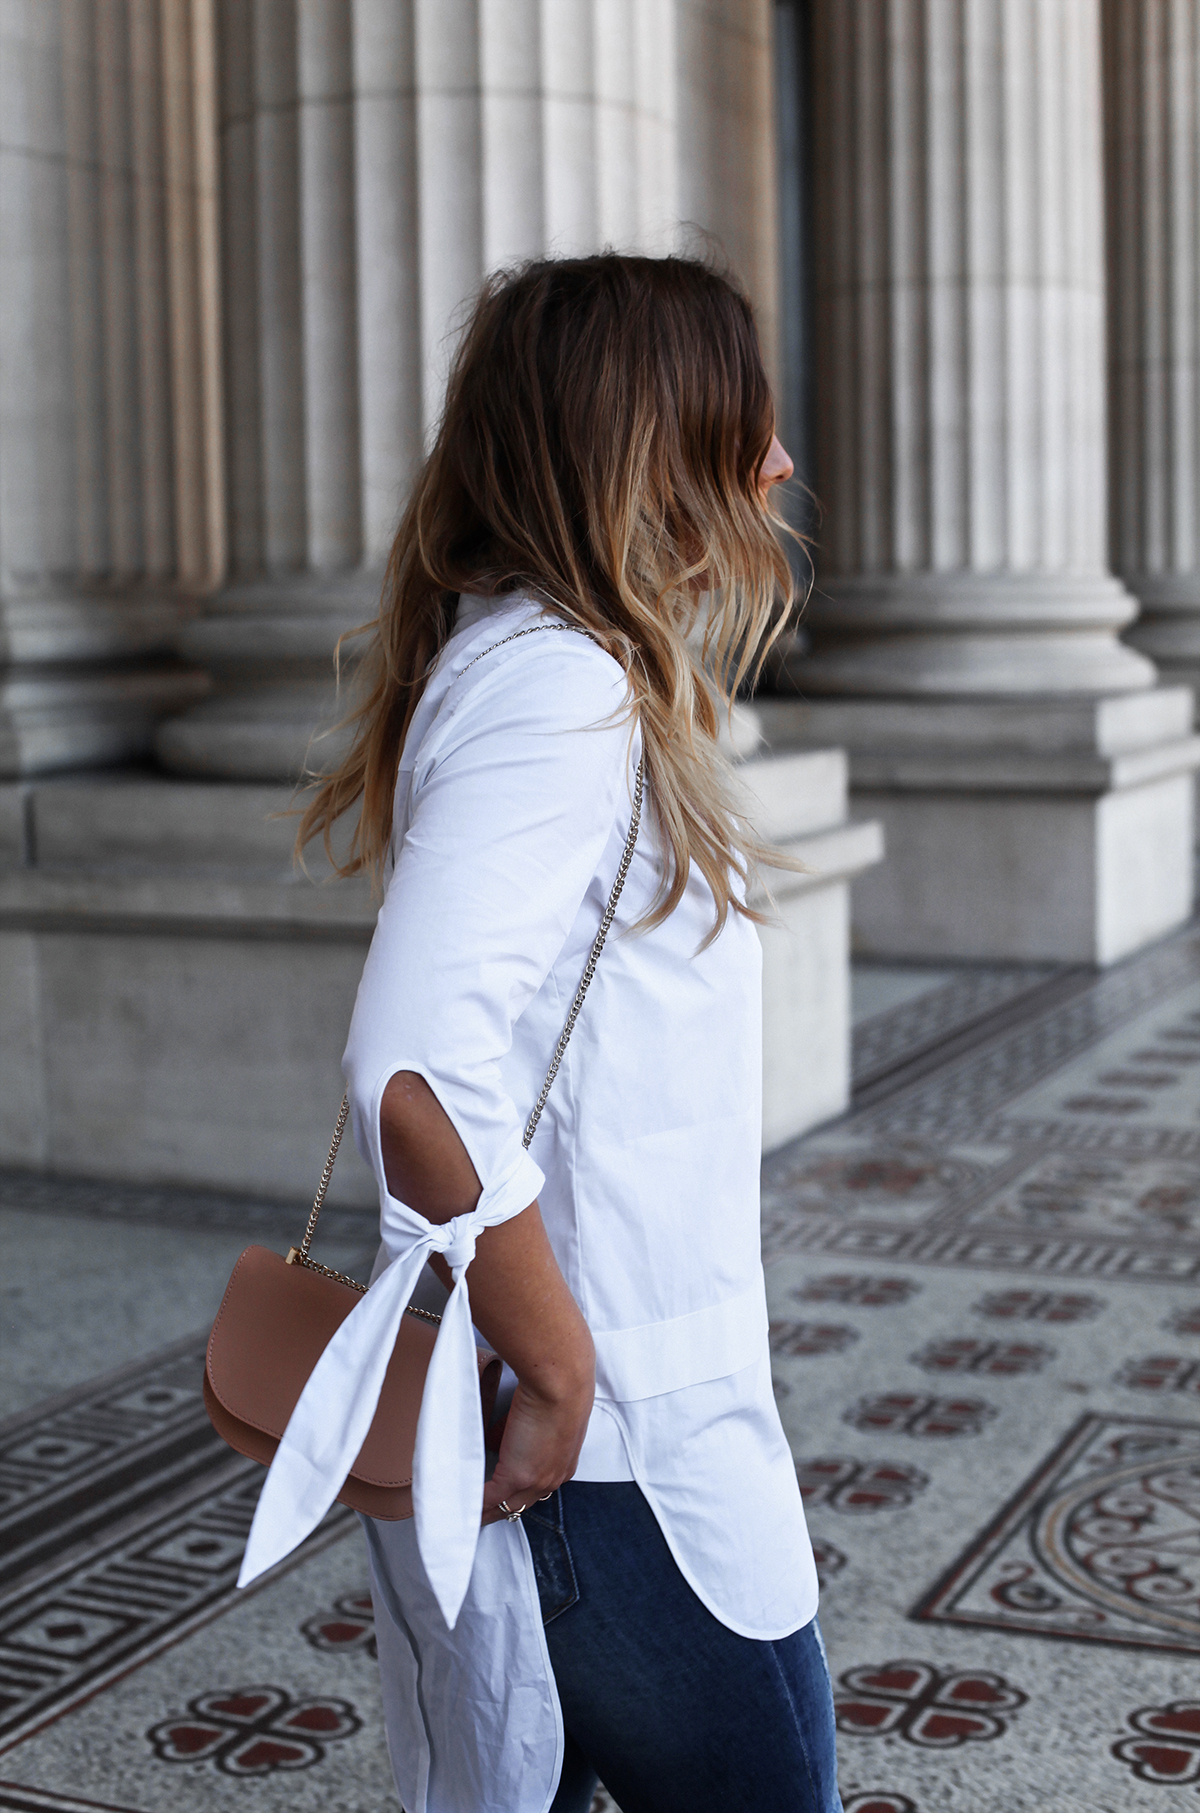 Style blogger Lisa Hamilton styling the Karen Millen white shirt capsule collection